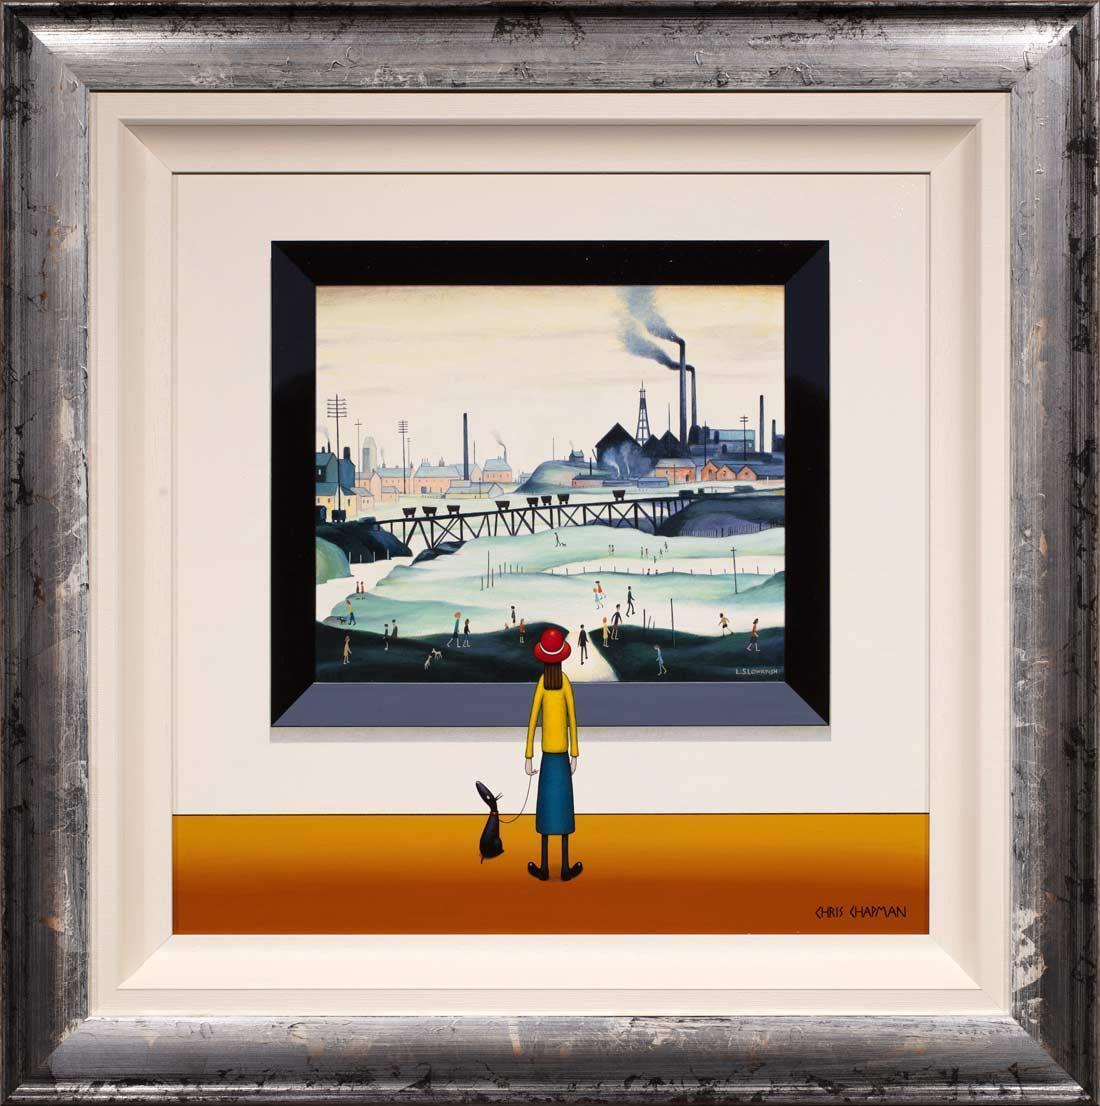 The Colliery - Original Chris Chapman Framed